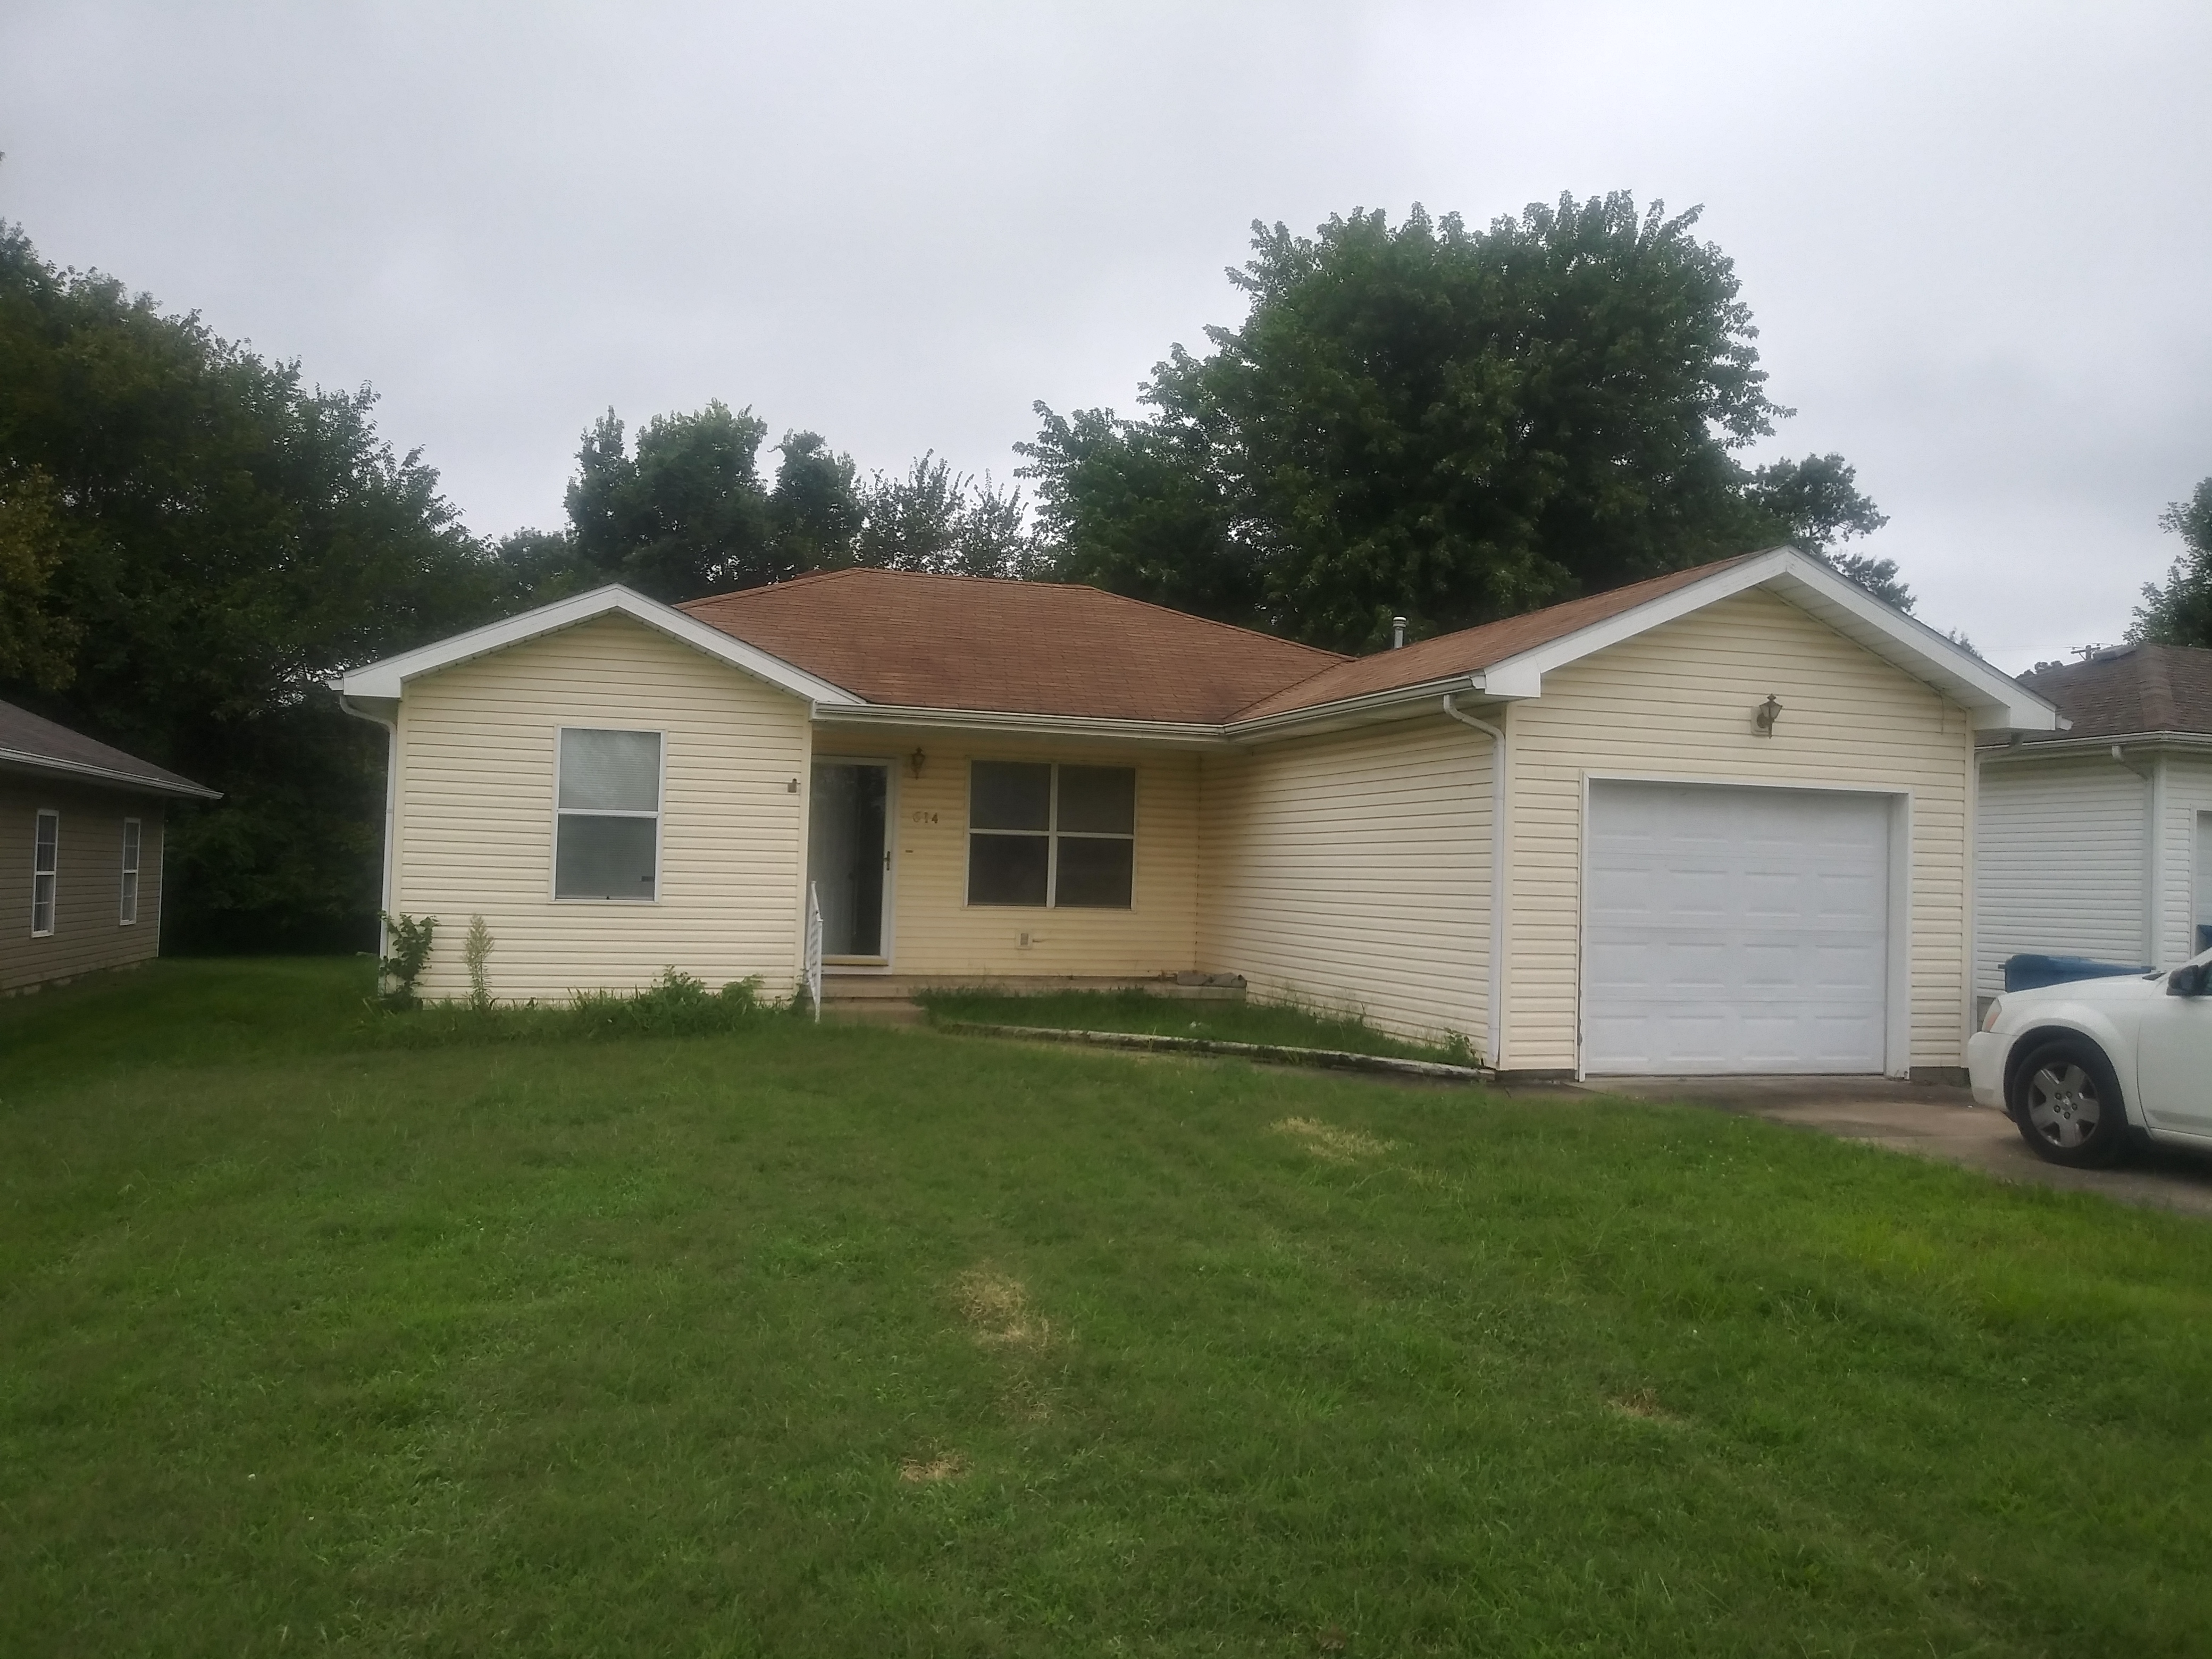 614 Valley View, Carl Junction, MO 64834